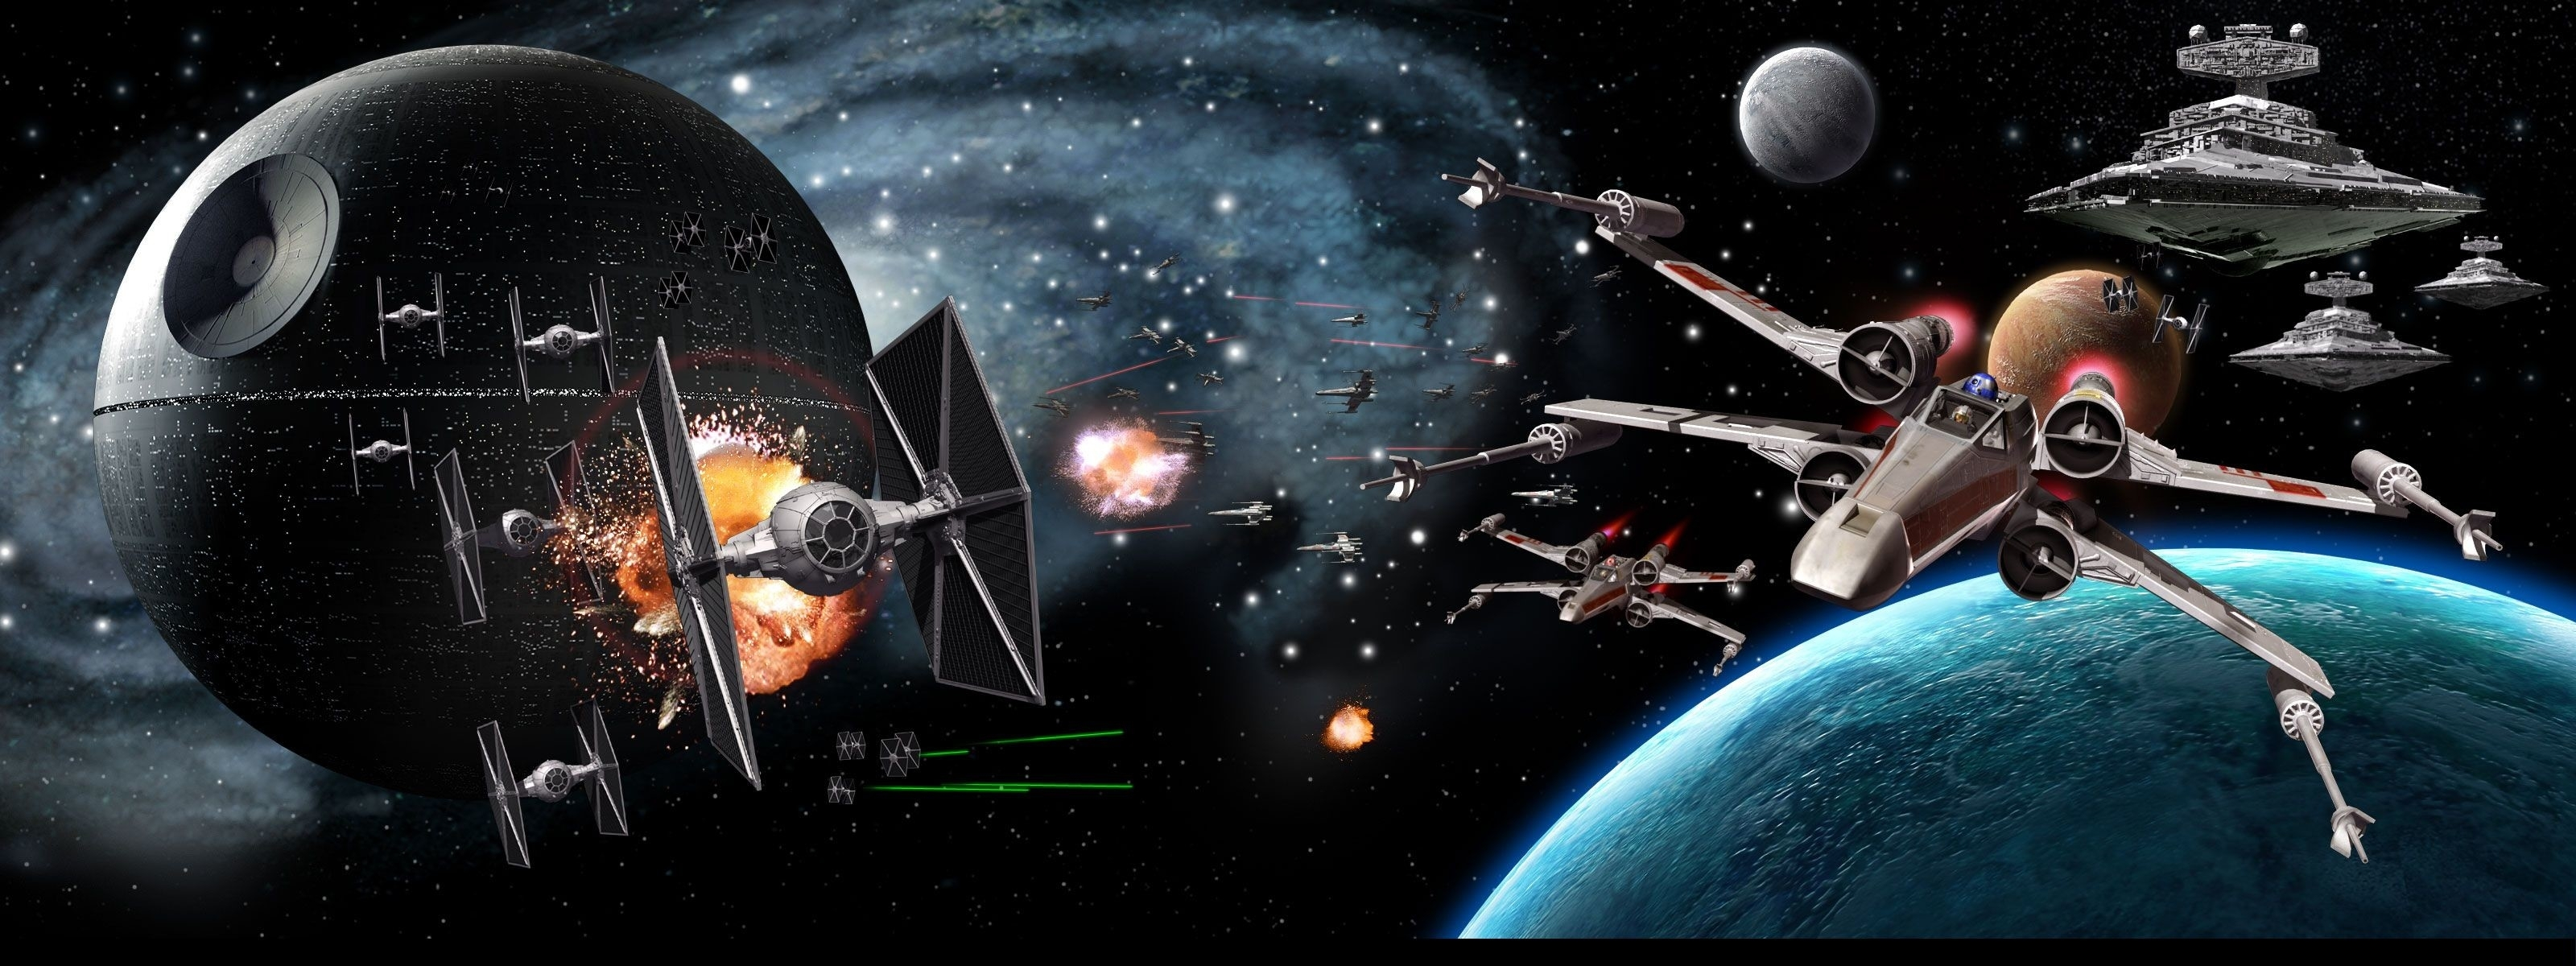 star wars triple screen wallpaper (19+ images)